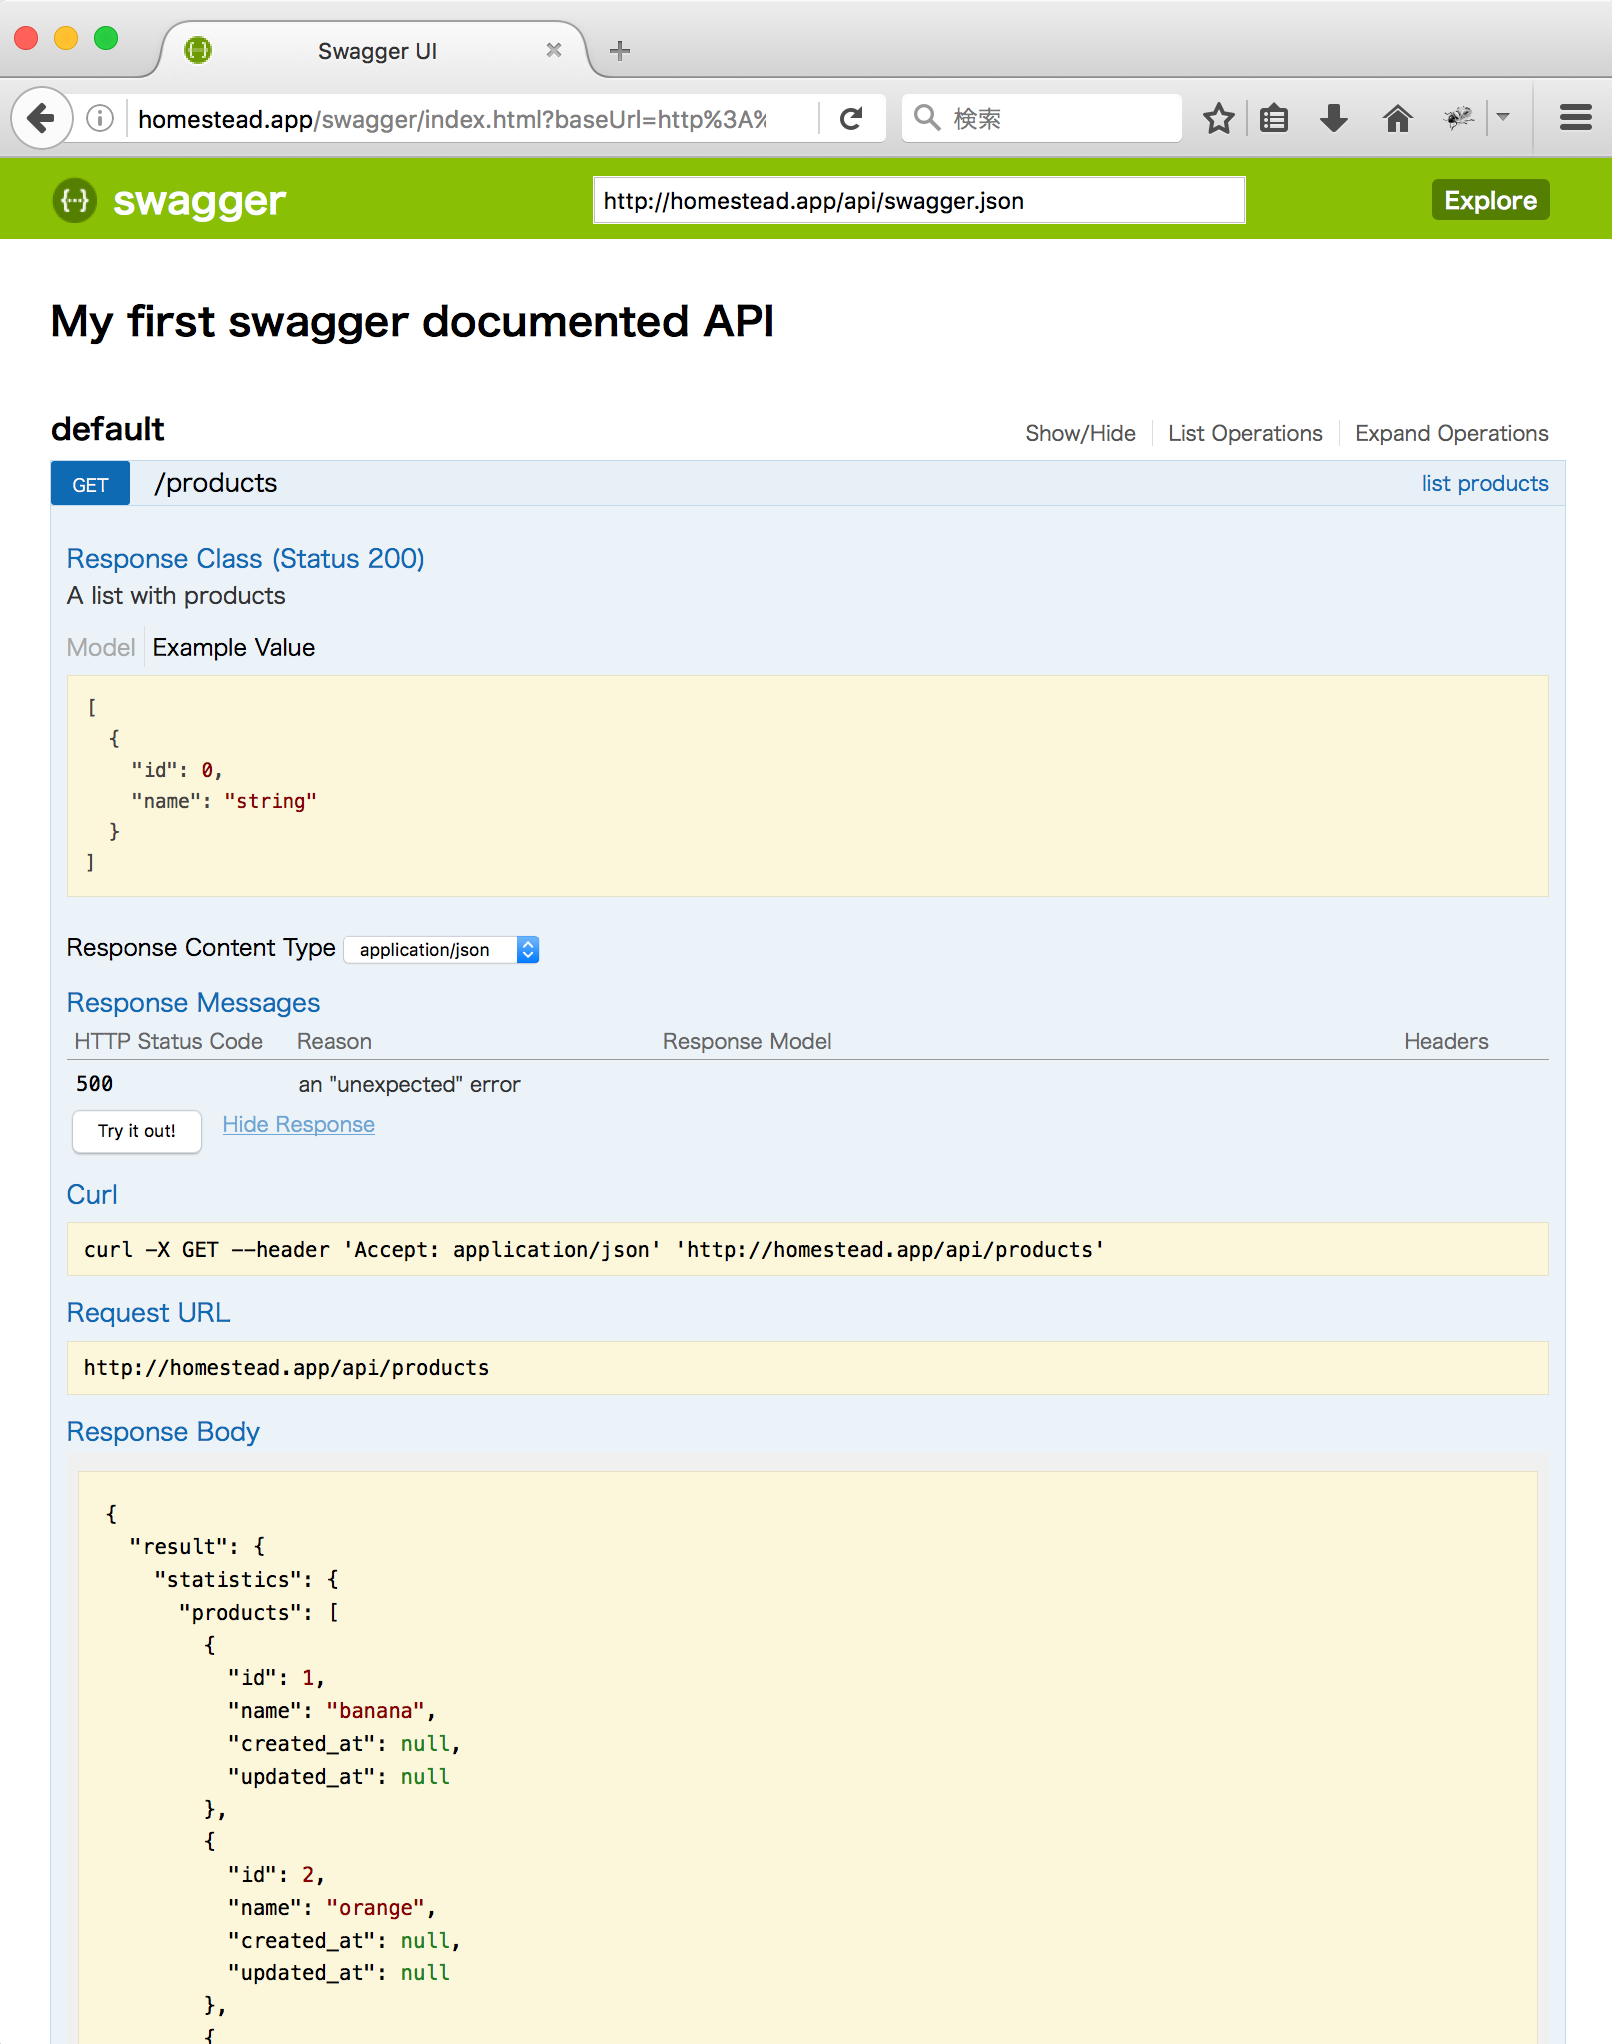 swagger-getting-start-using-swagger-ui